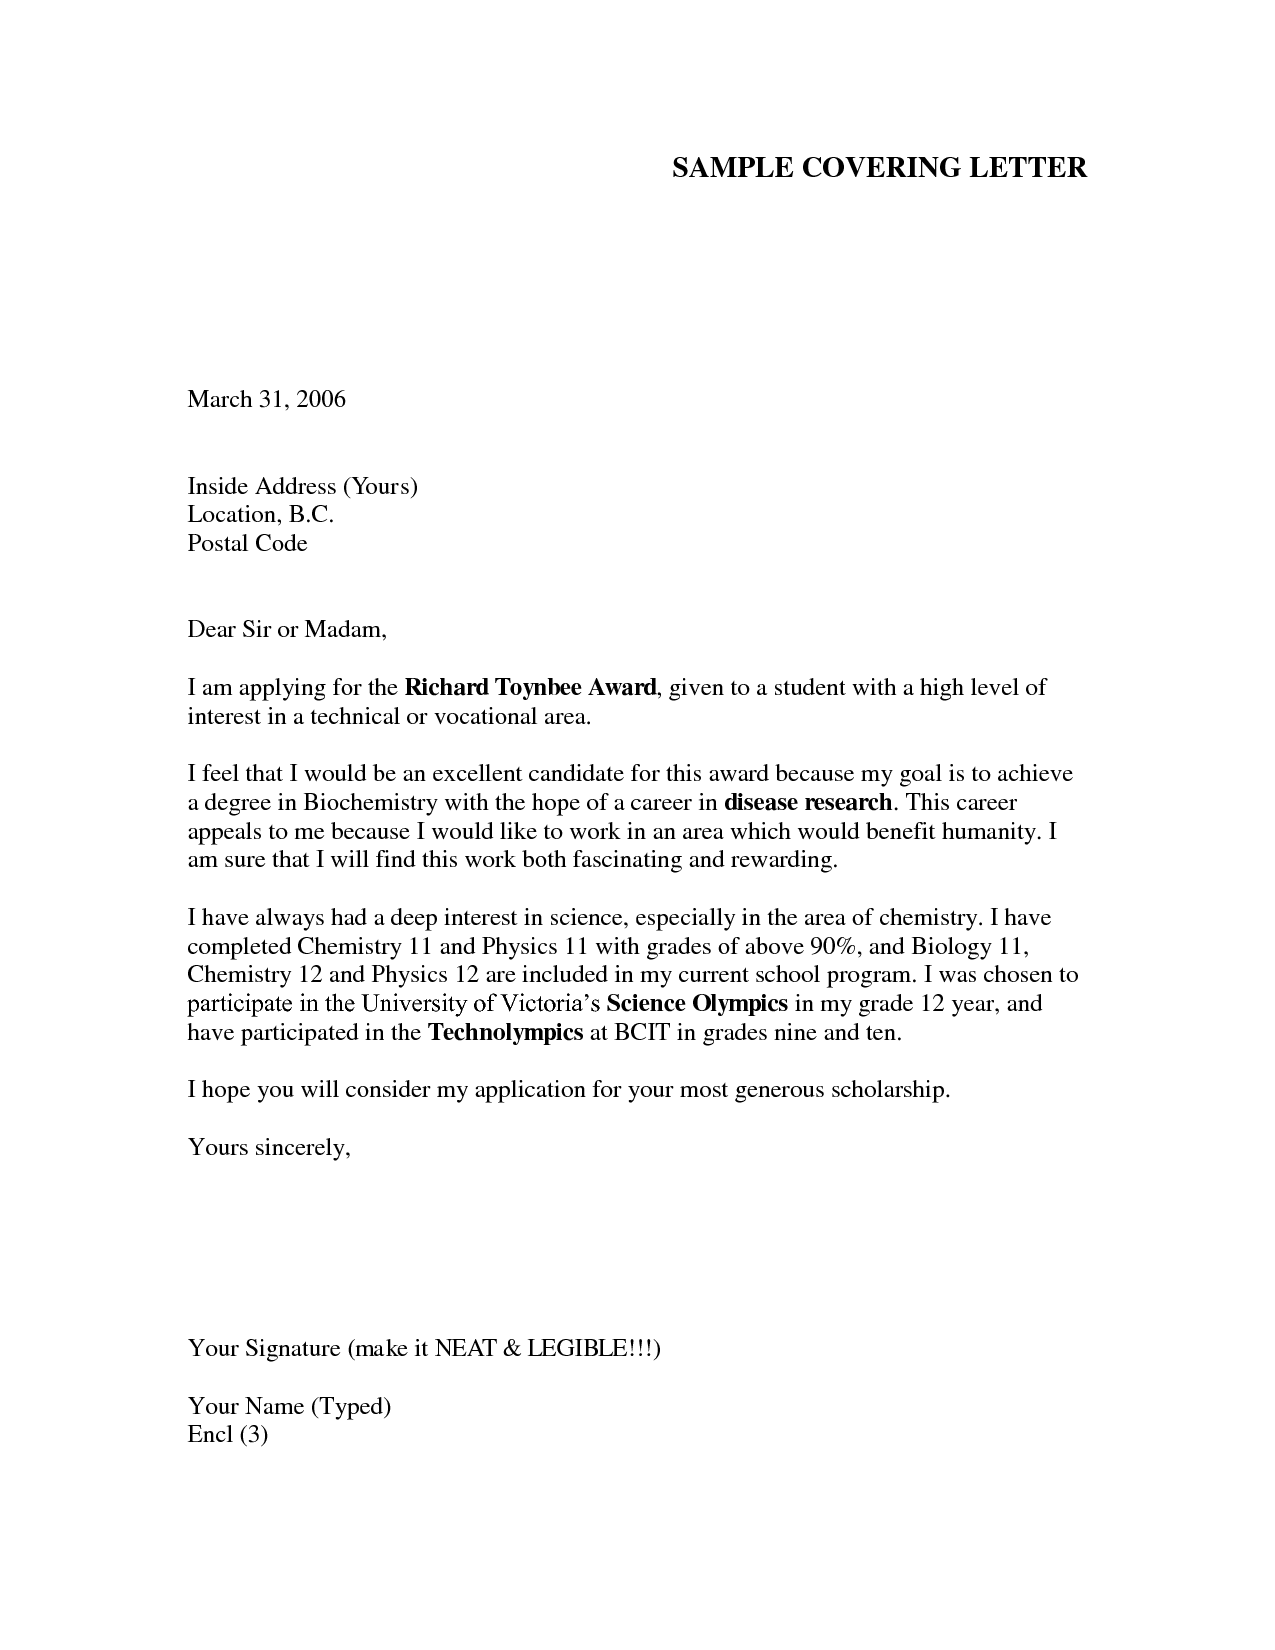 Cover letter example for job application cover letter for Examples of a covering letter for a job application